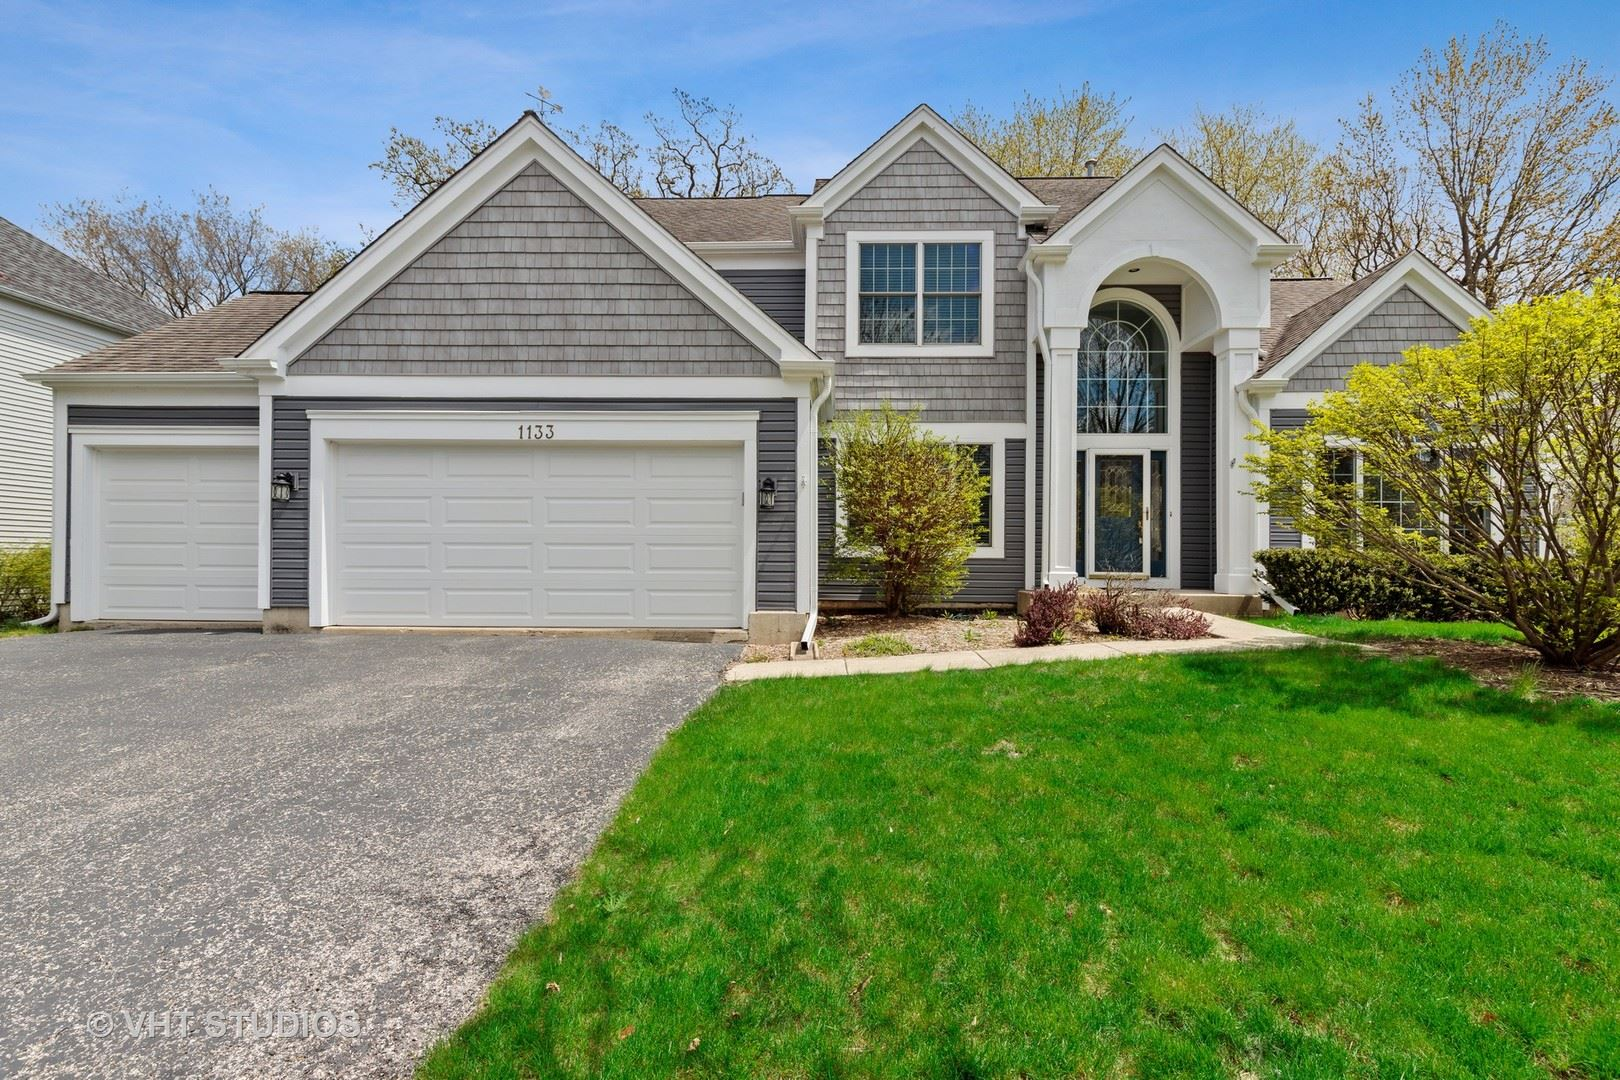 1133 Williamsburg Circle, Grayslake, IL 60030 - #: 10641326